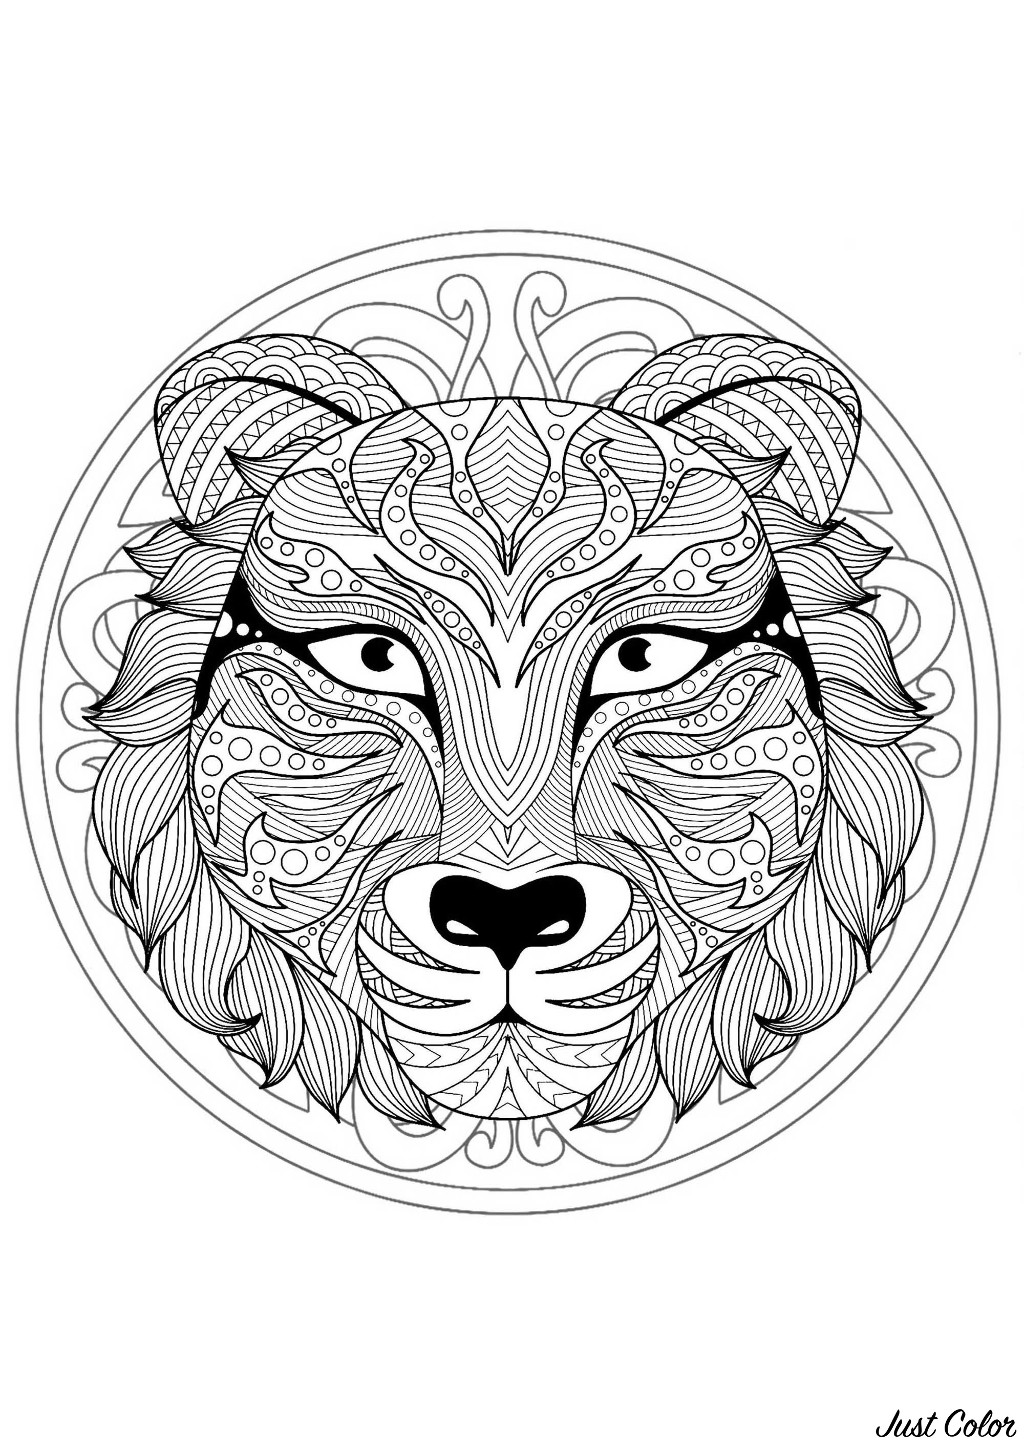 Beautiful Mandalas coloring page